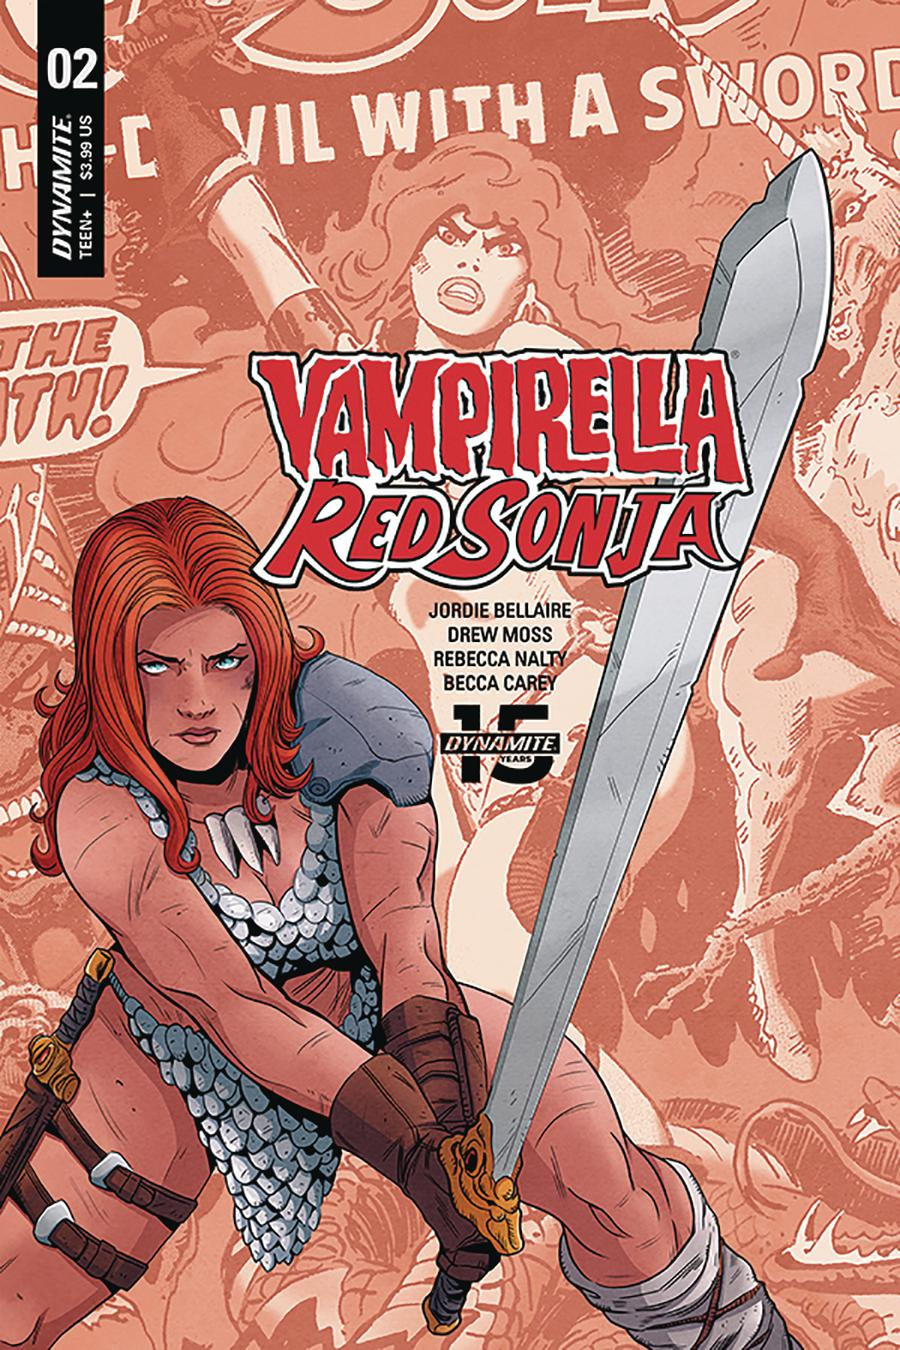 Vampirella Red Sonja #2 Cover E Variant Drew Moss Now And Then Cover